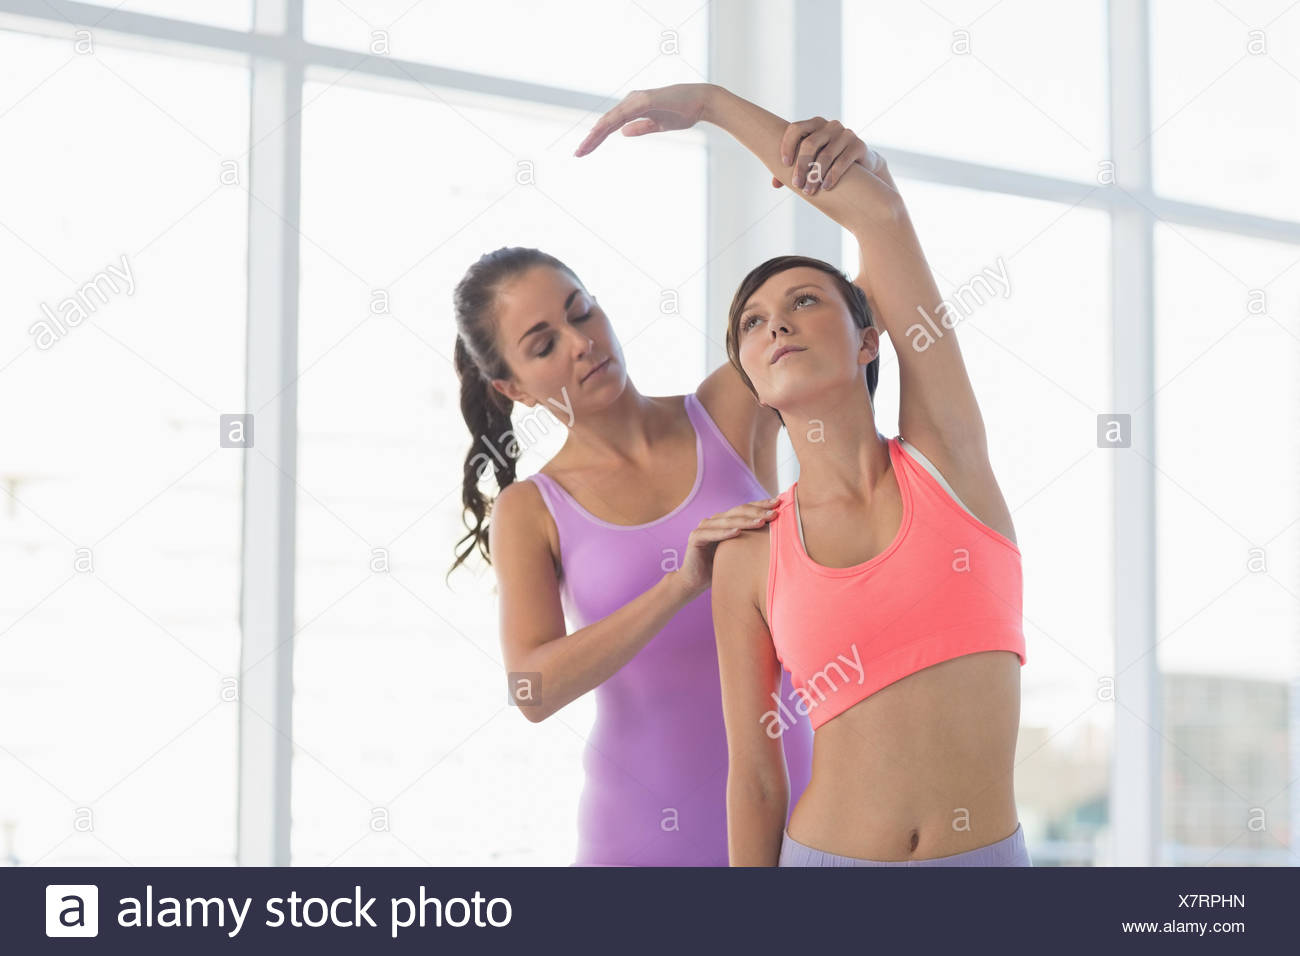 Instructor guiding woman - Stock Image